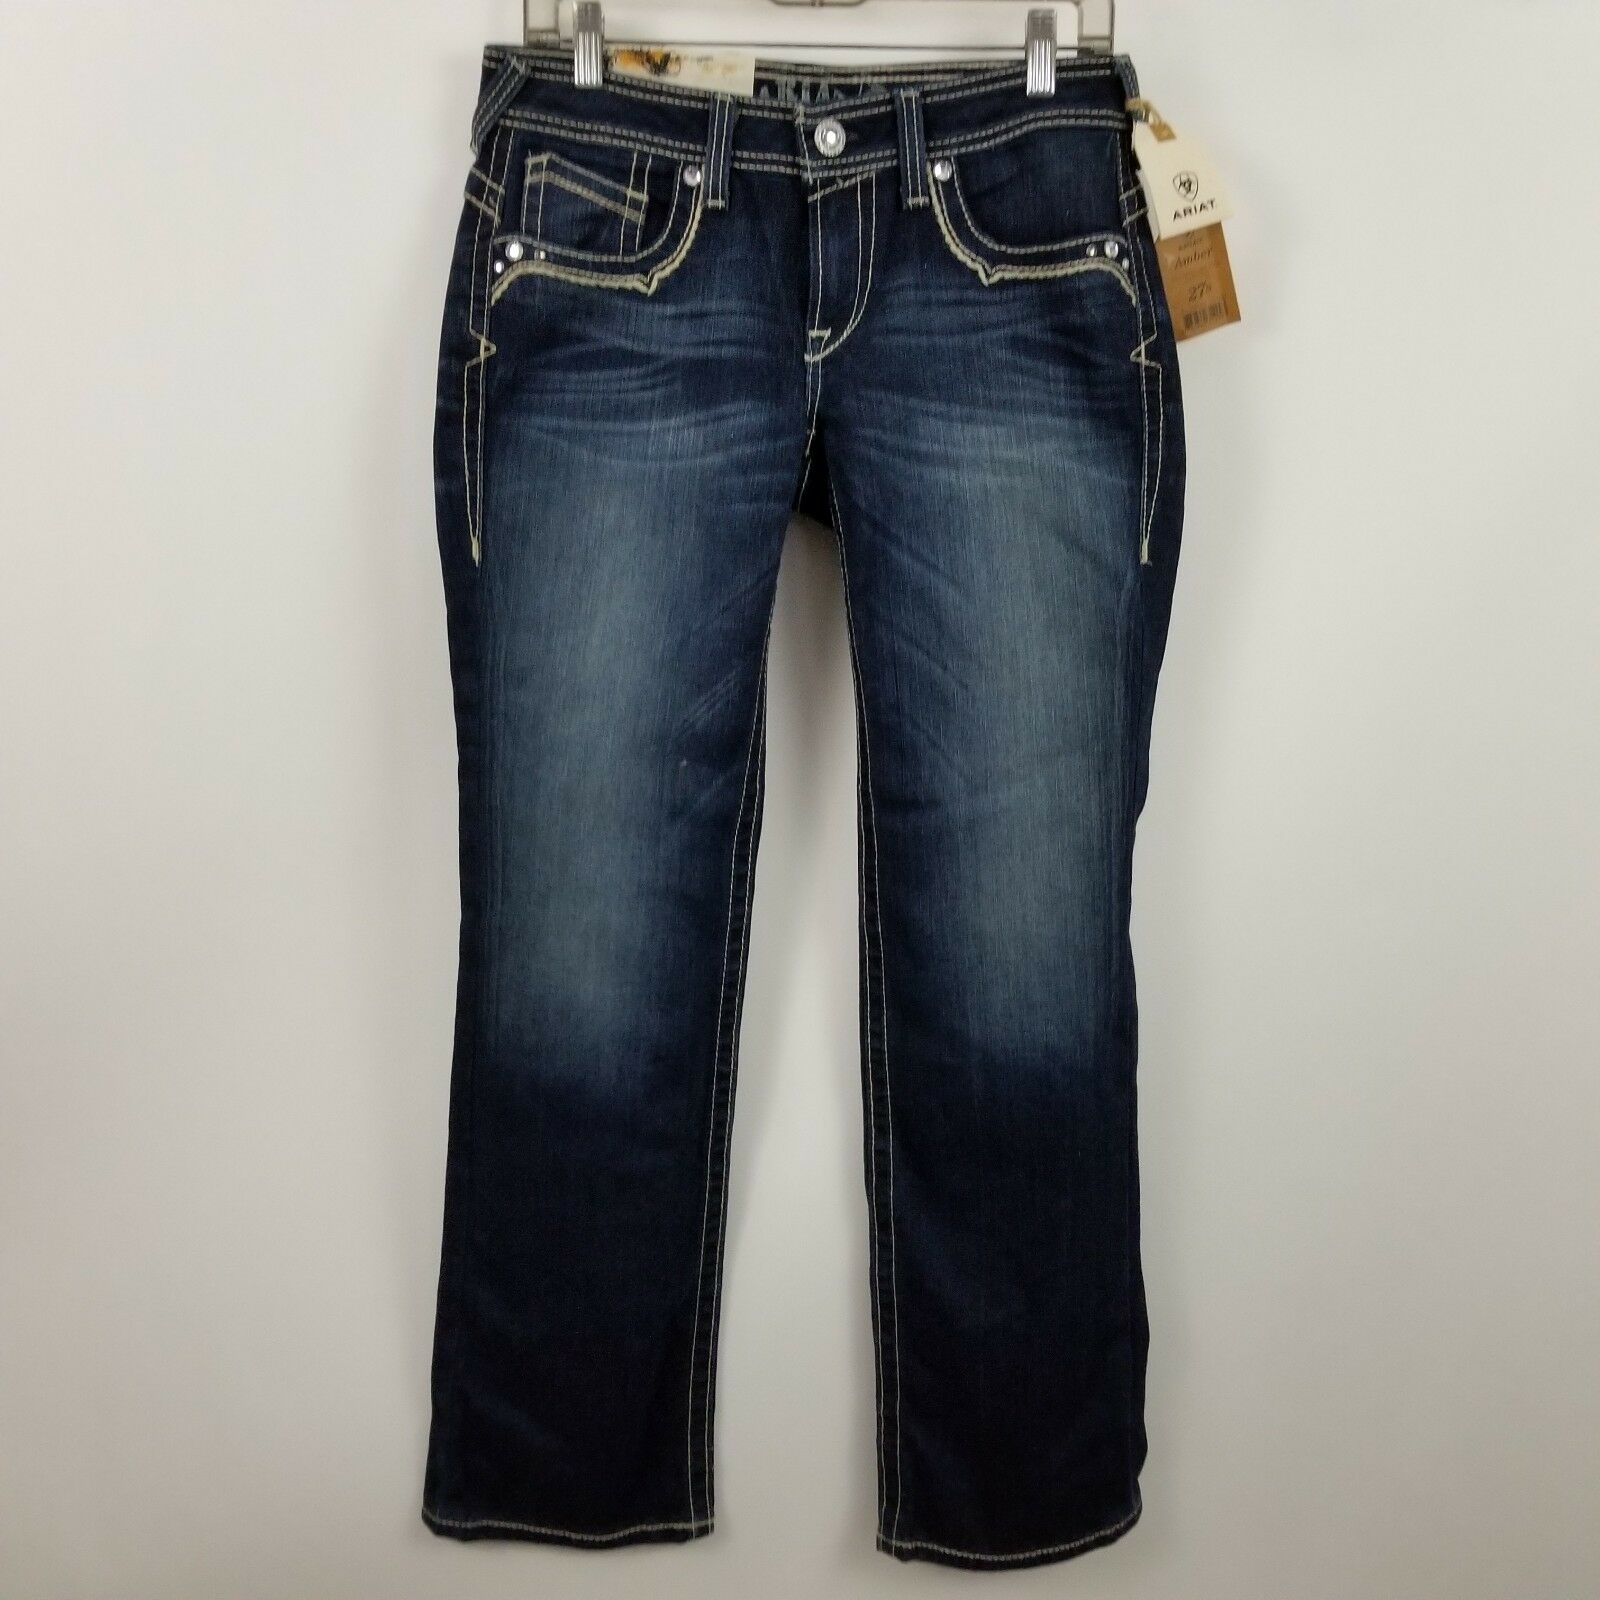 NWT Ariat Amber Relaxed Low Rise Boot Cut Womens Dark Wash Jeans Sz 27 Short 27S